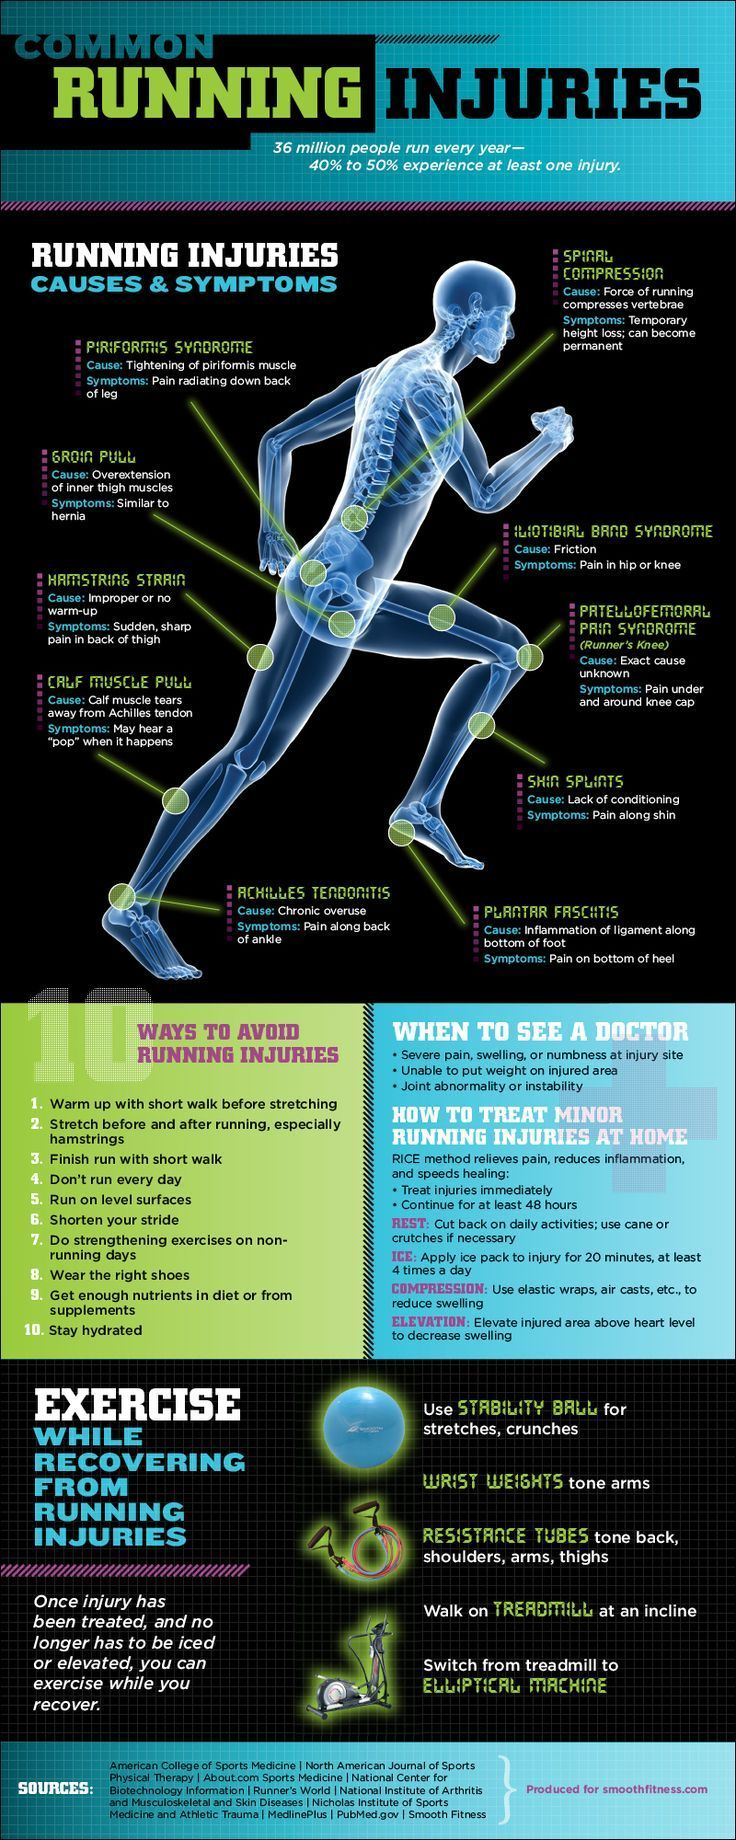 """This infographic gives an over view of the most common injuries experienced by runners and how to treat them. Even though running isn't a """"contact"""" sport, it's amazing to see how many injuries you can get form it and how stressful it is on the body. Today's infographic also does the favor of listing ways to avoid injury.    maddenptblog.com..."""